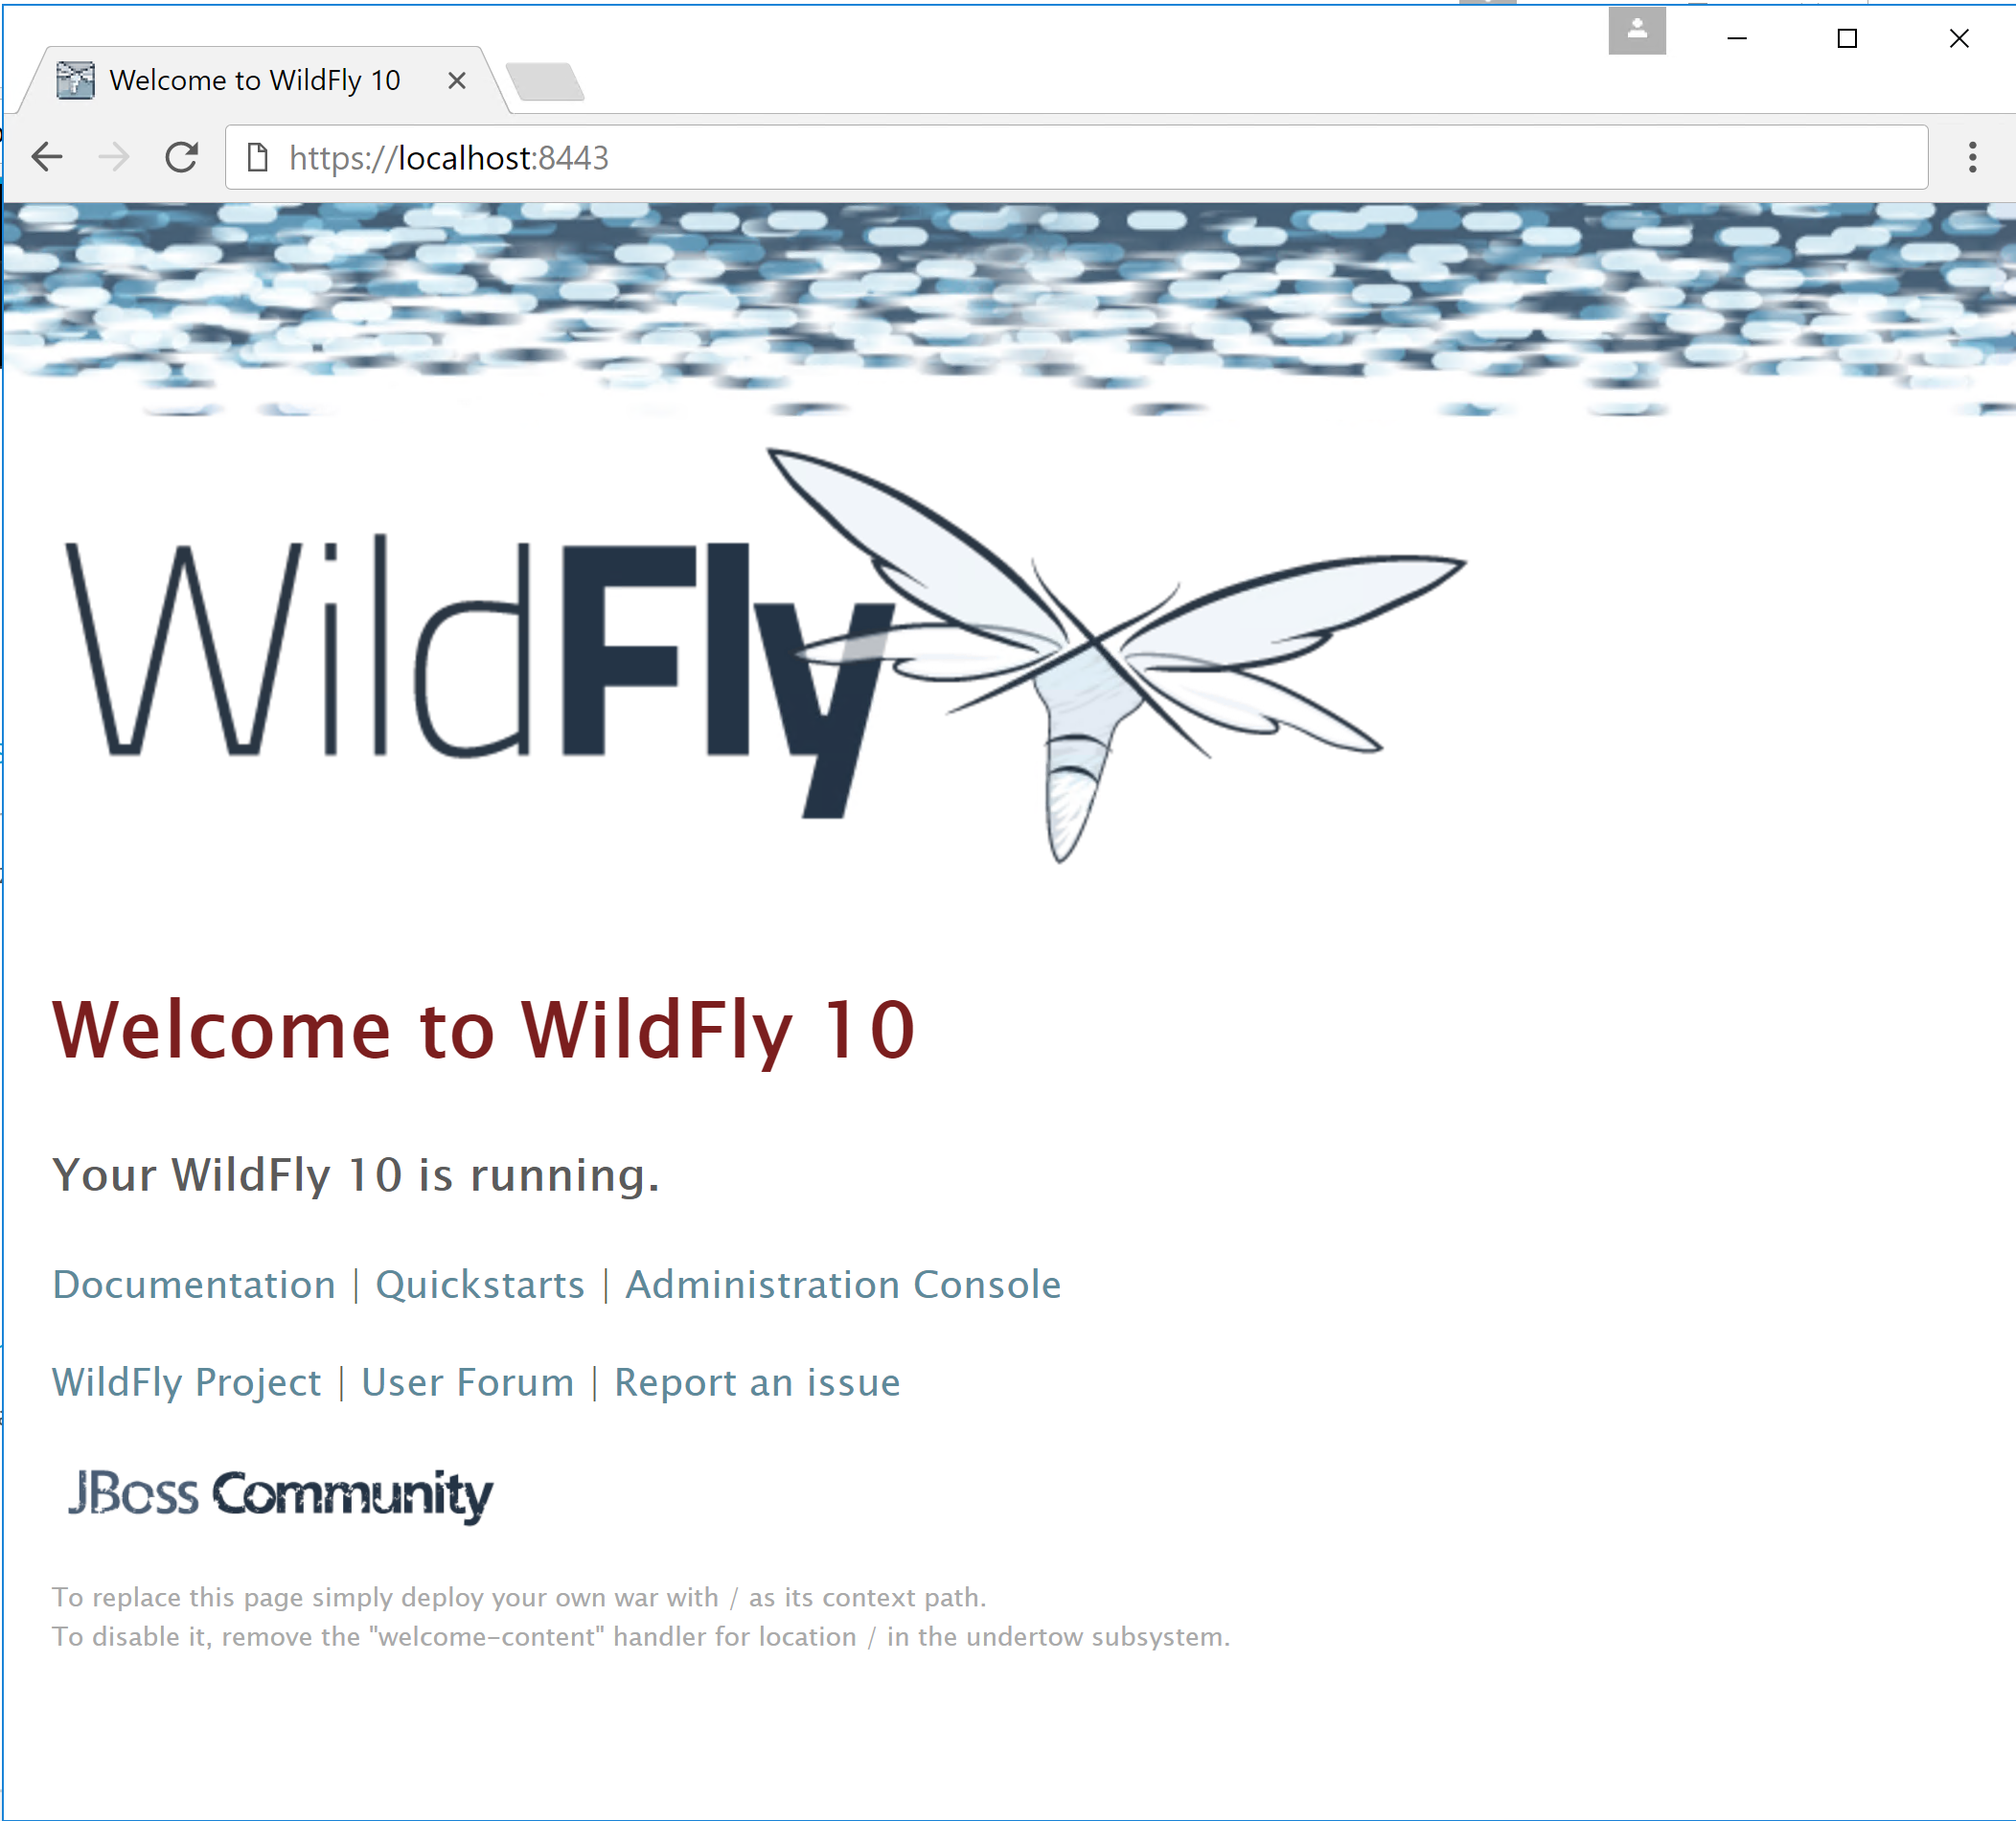 Deploying Certificates to WildFly - Octopus Deploy